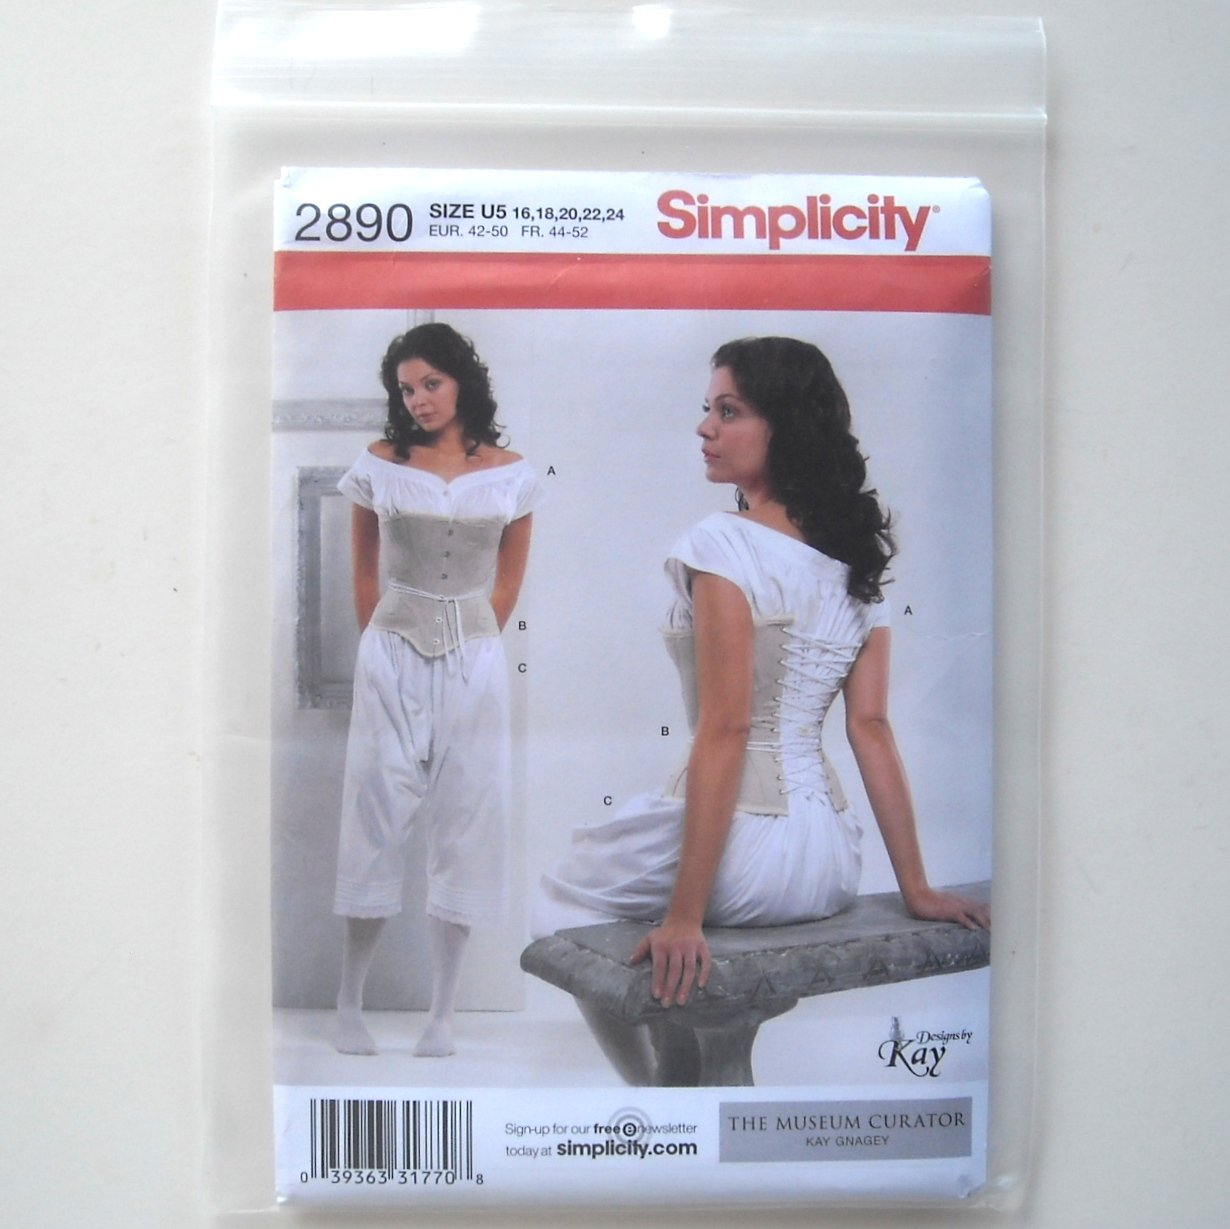 Simplicity Pattern 2890 Size 16 - 24 Misses Drawers Chemise Corset Costume